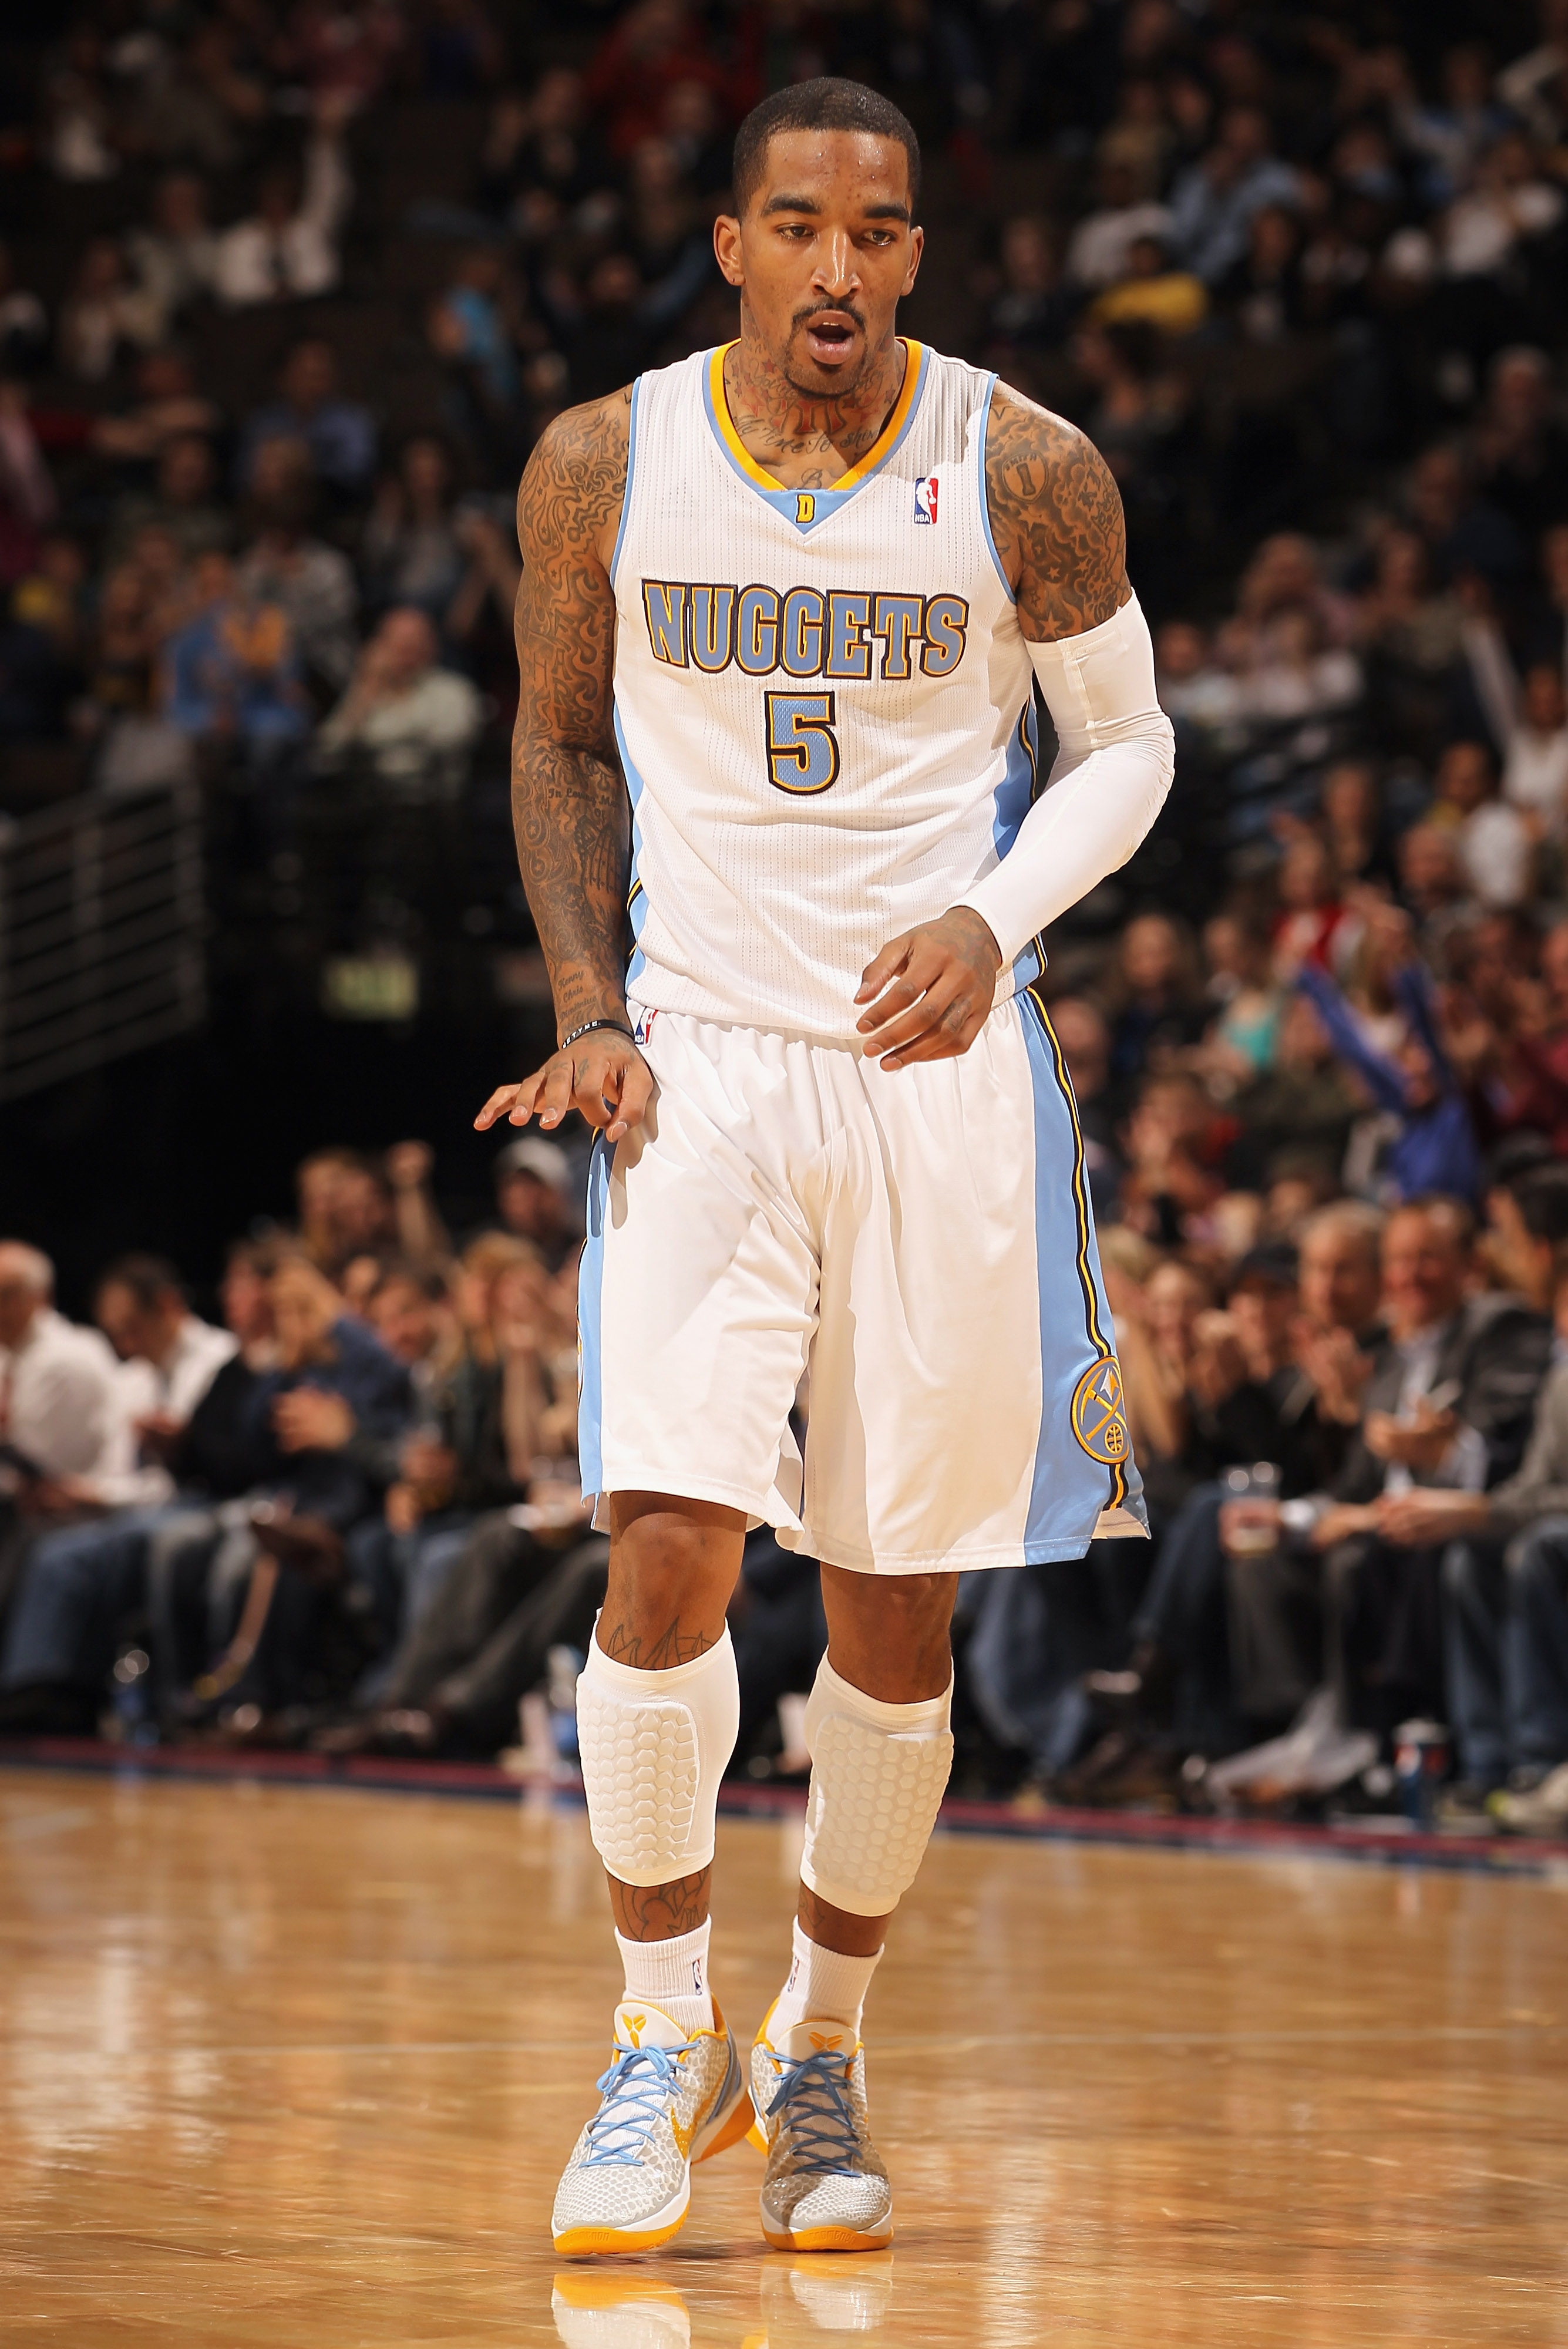 DENVER, CO - FEBRUARY 28:  J.R. Smith #5 of the Denver Nuggets gestures after scoring a three point basket against the Atlanta Hawks during NBA action at the Pepsi Center on February 28, 2011 in Denver, Colorado. The Nuggets deafeated the Hawks 100-90. NO